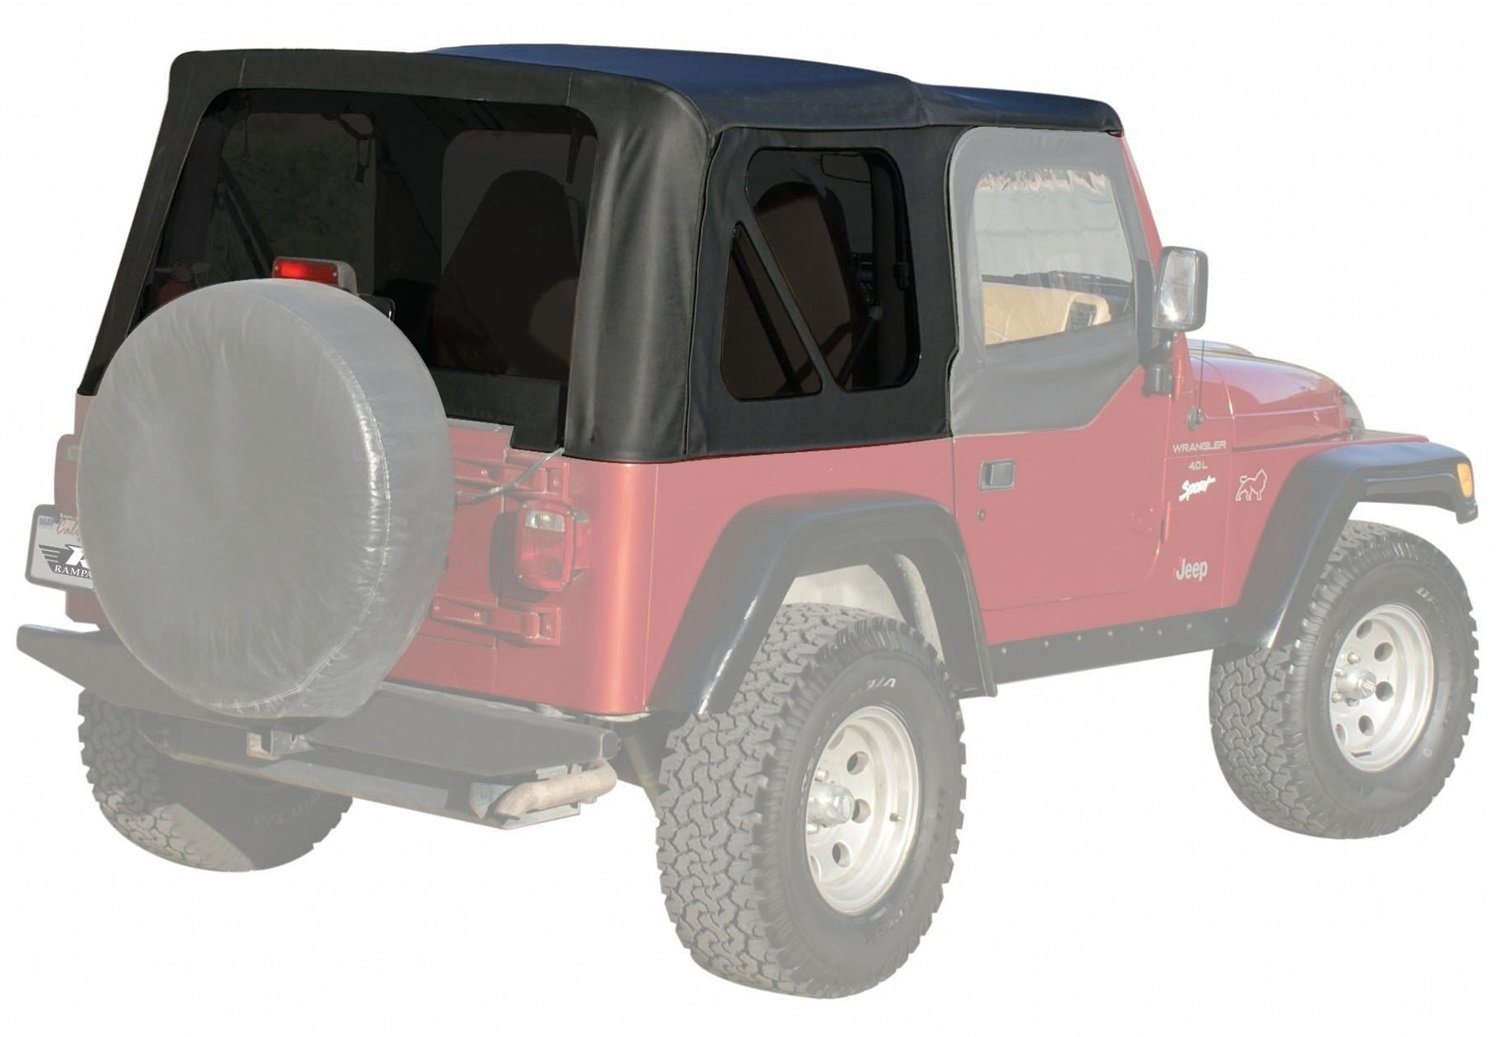 Amazon.com: RAMPAGE PRODUCTS 99335 Factory Replacement Soft Top for 1997-2006  Jeep Wrangler with Full Steel Doors, Black Diamond w/Tinted Windows: ...